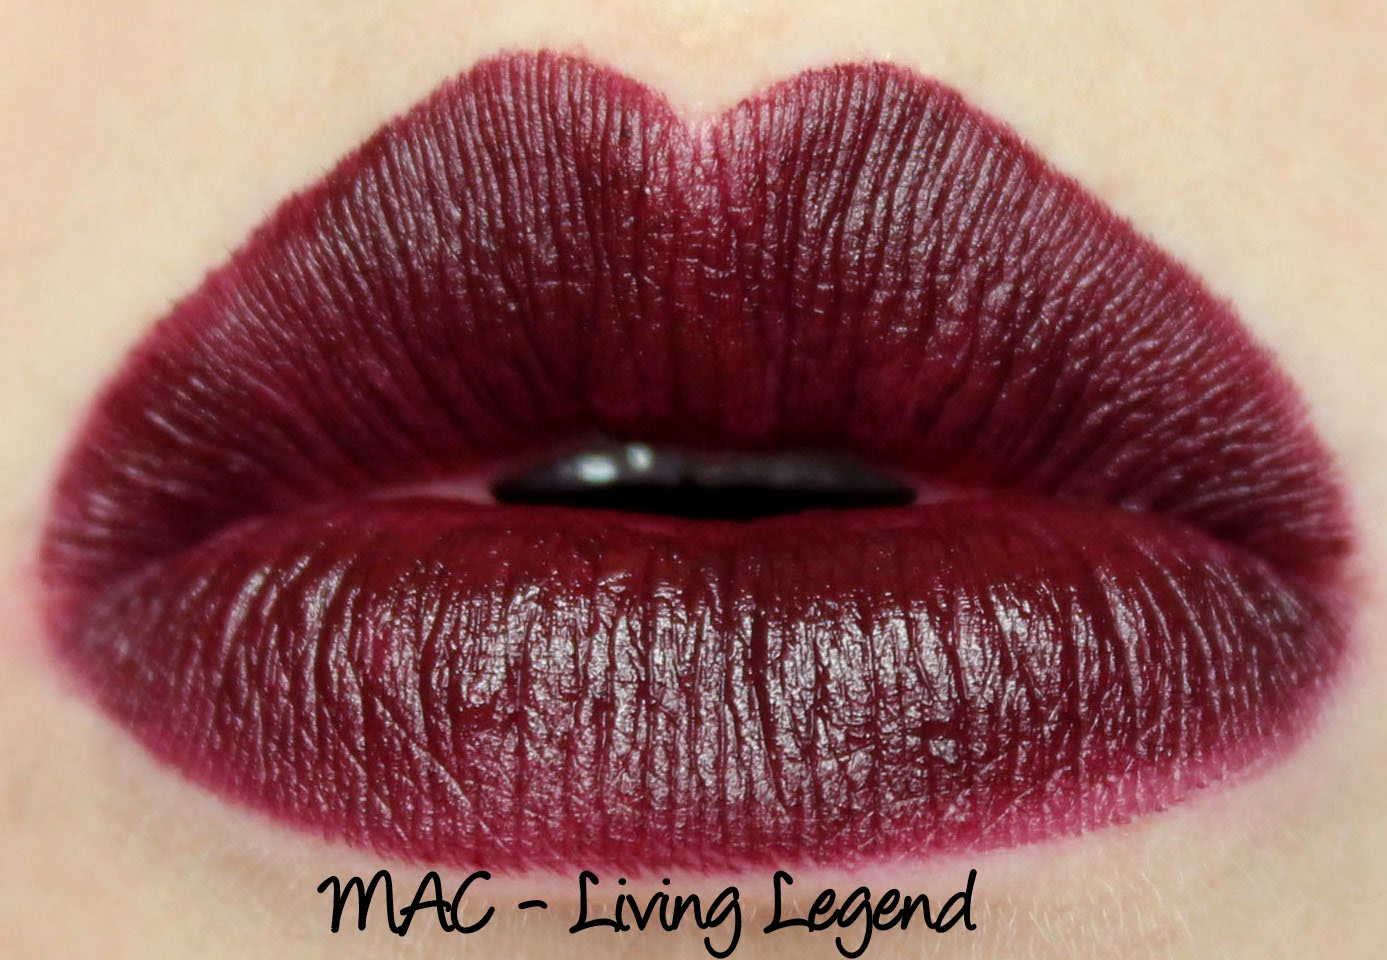 MAC Living Legend Lipstick Swatches & Review